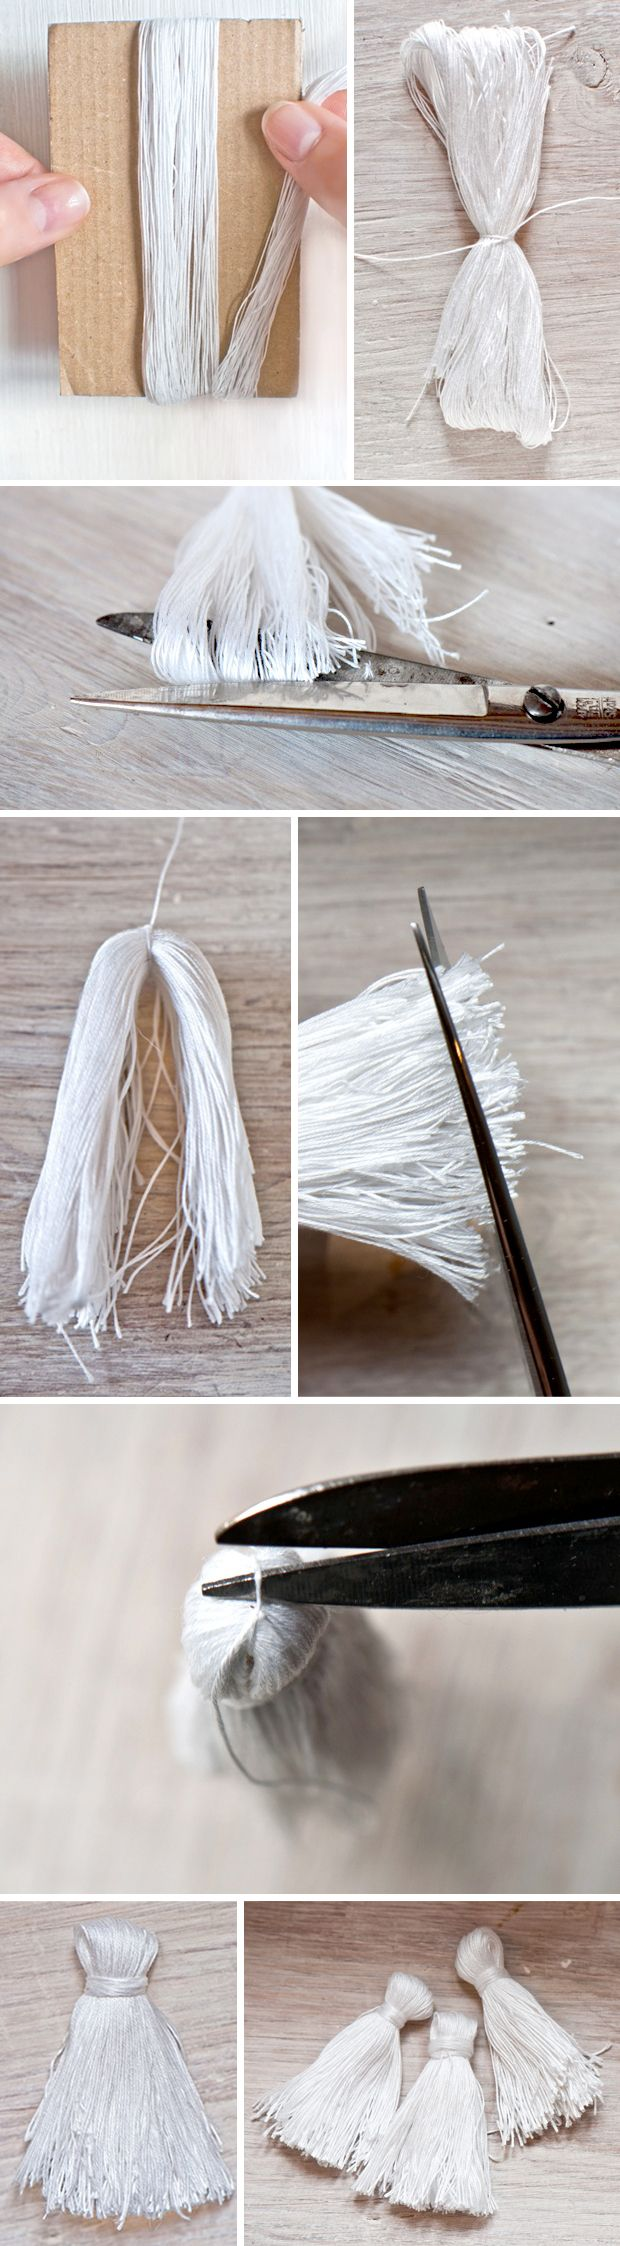 How to make tassels - Oh the lovely things: diy